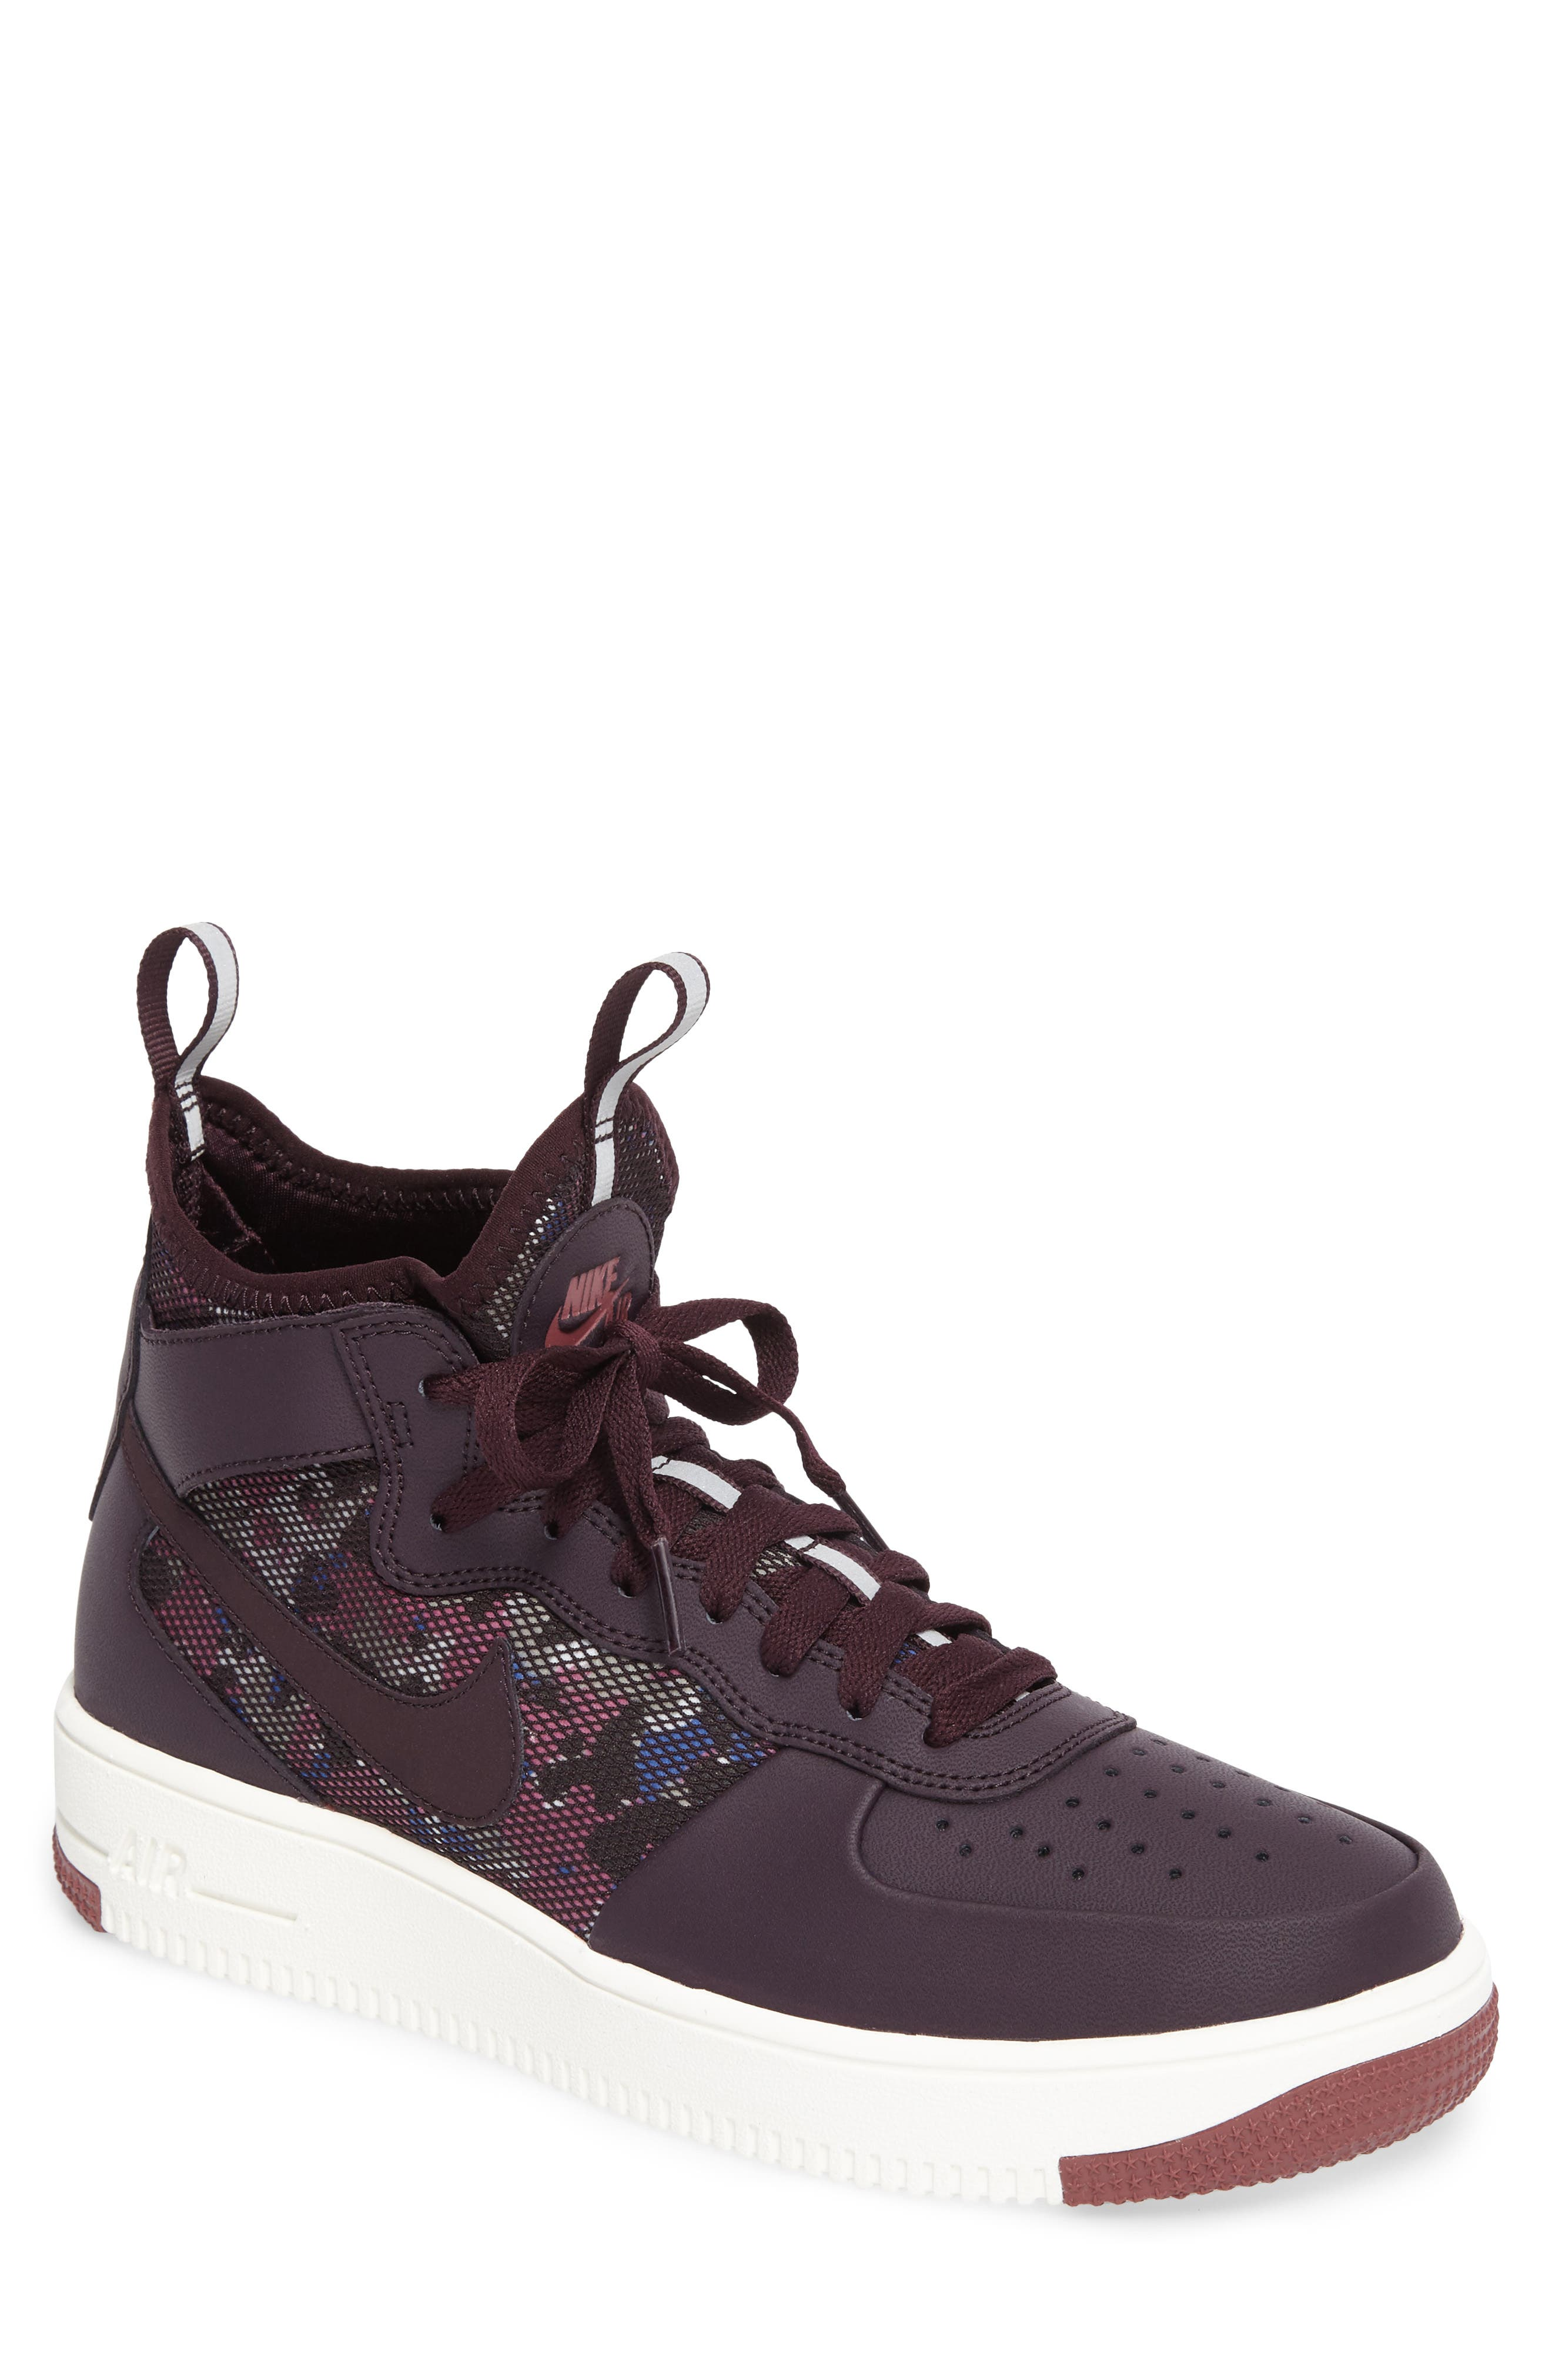 Air Force 1 Ultraforce Mid Sneaker,                         Main,                         color, Port Wine/ Summit White